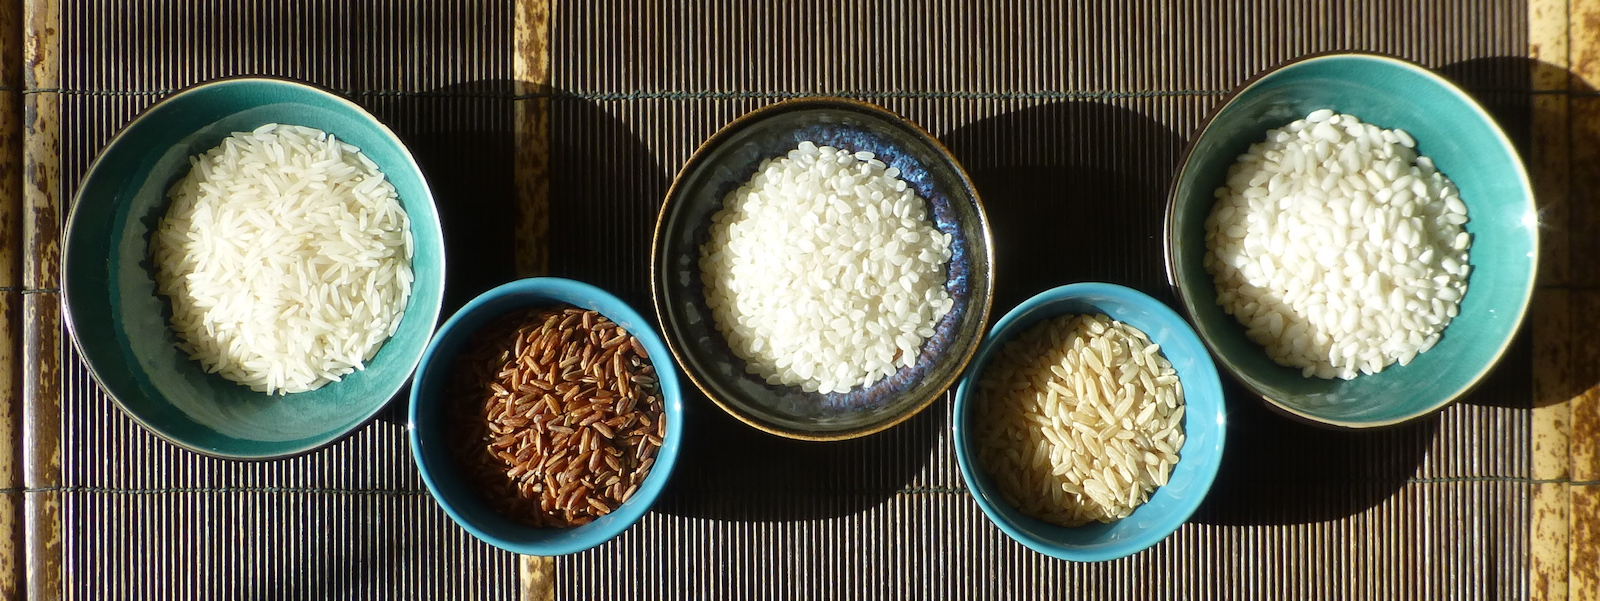 My favourite types of rice